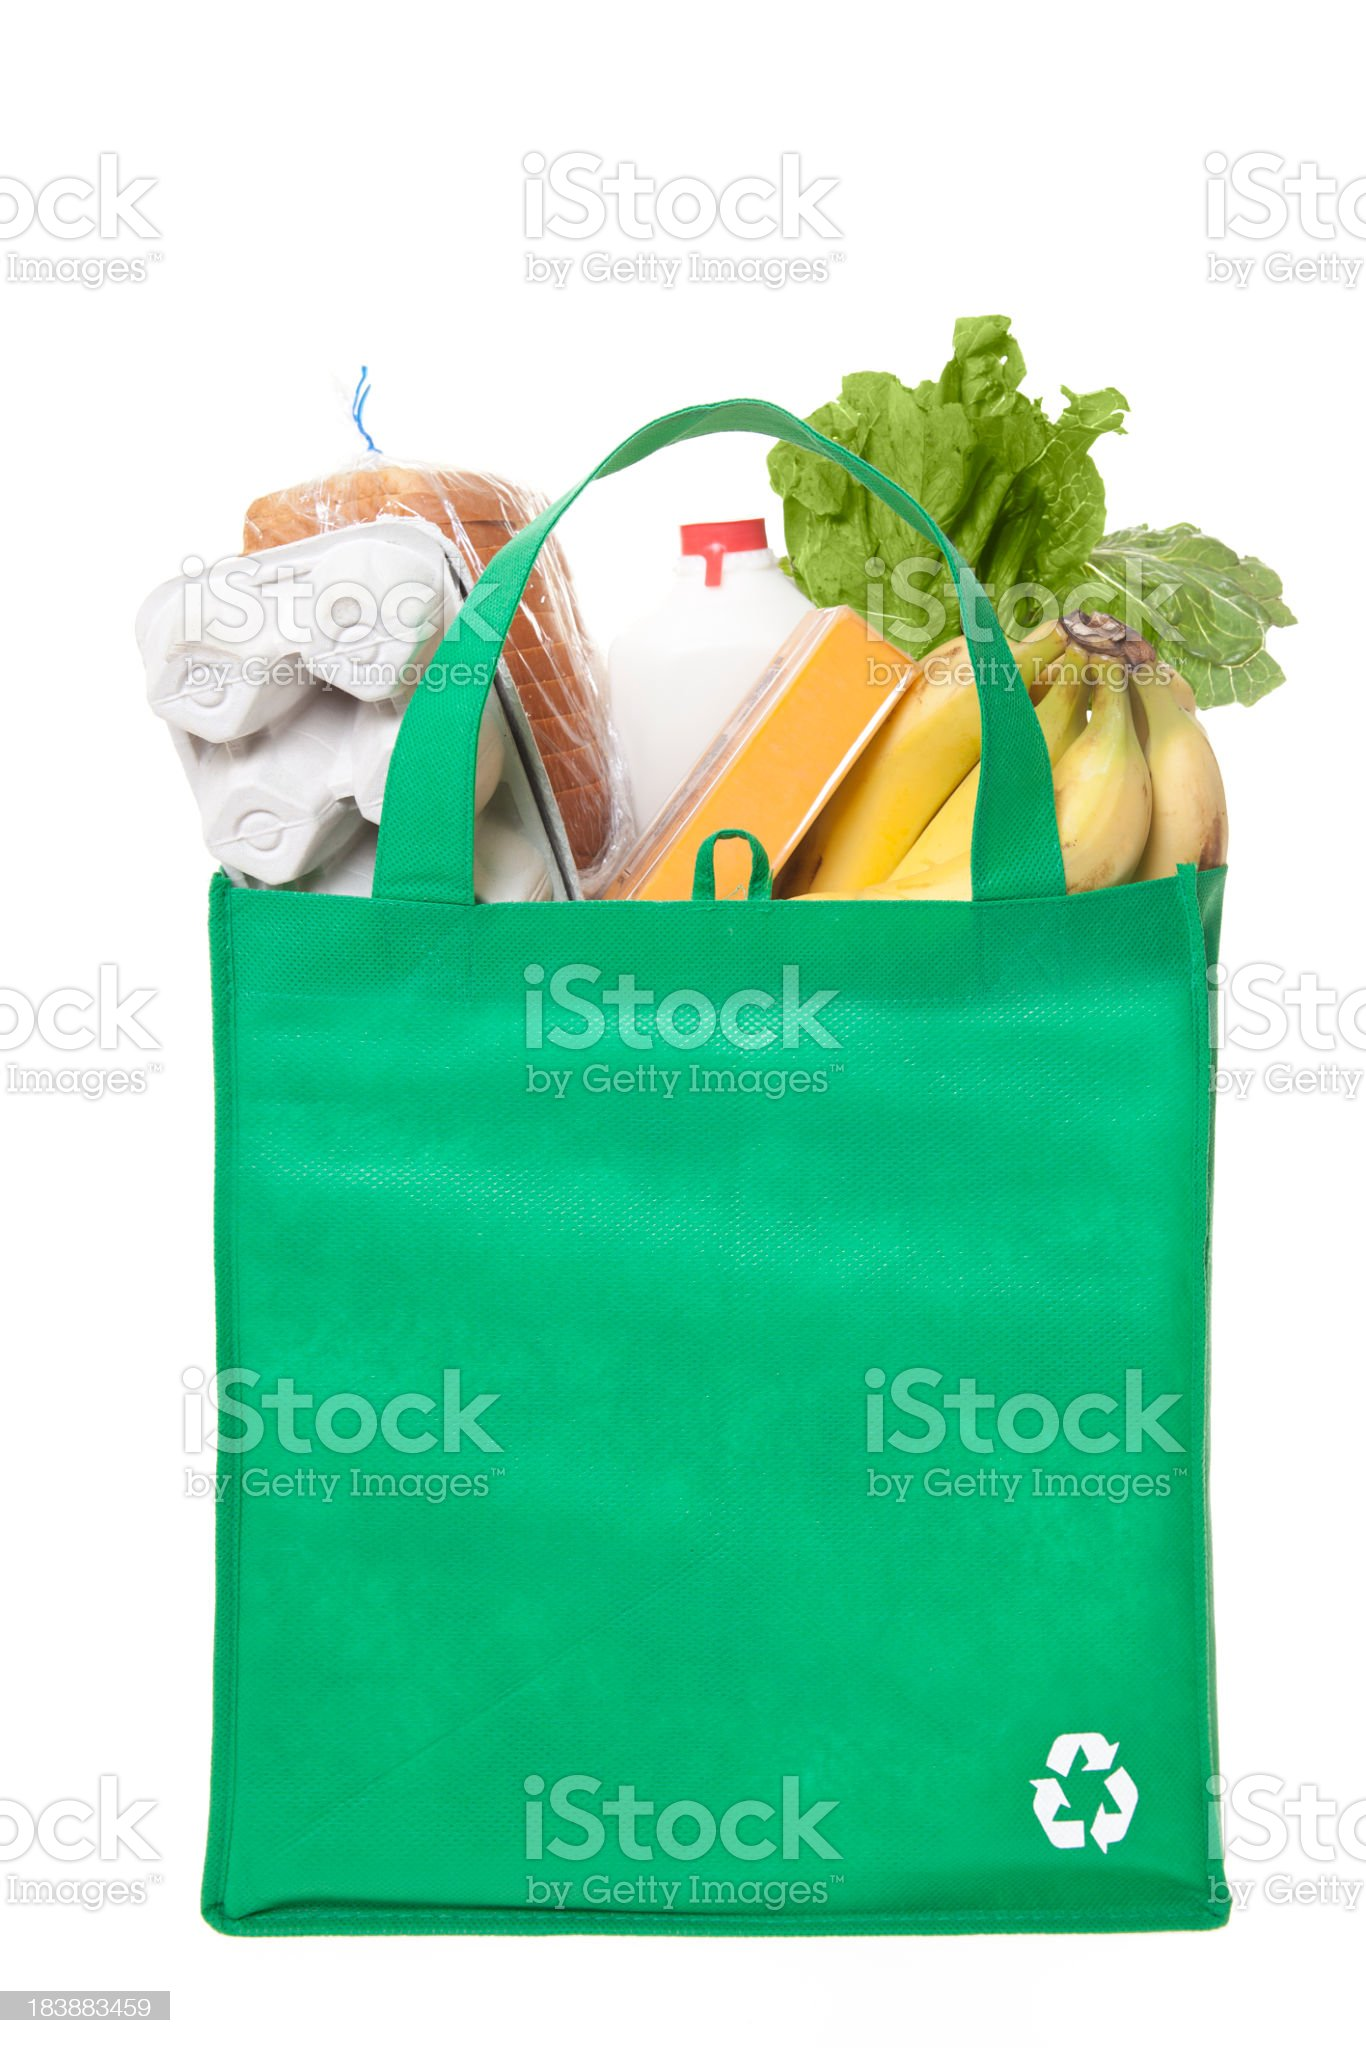 reusable grocery bag royalty-free stock photo